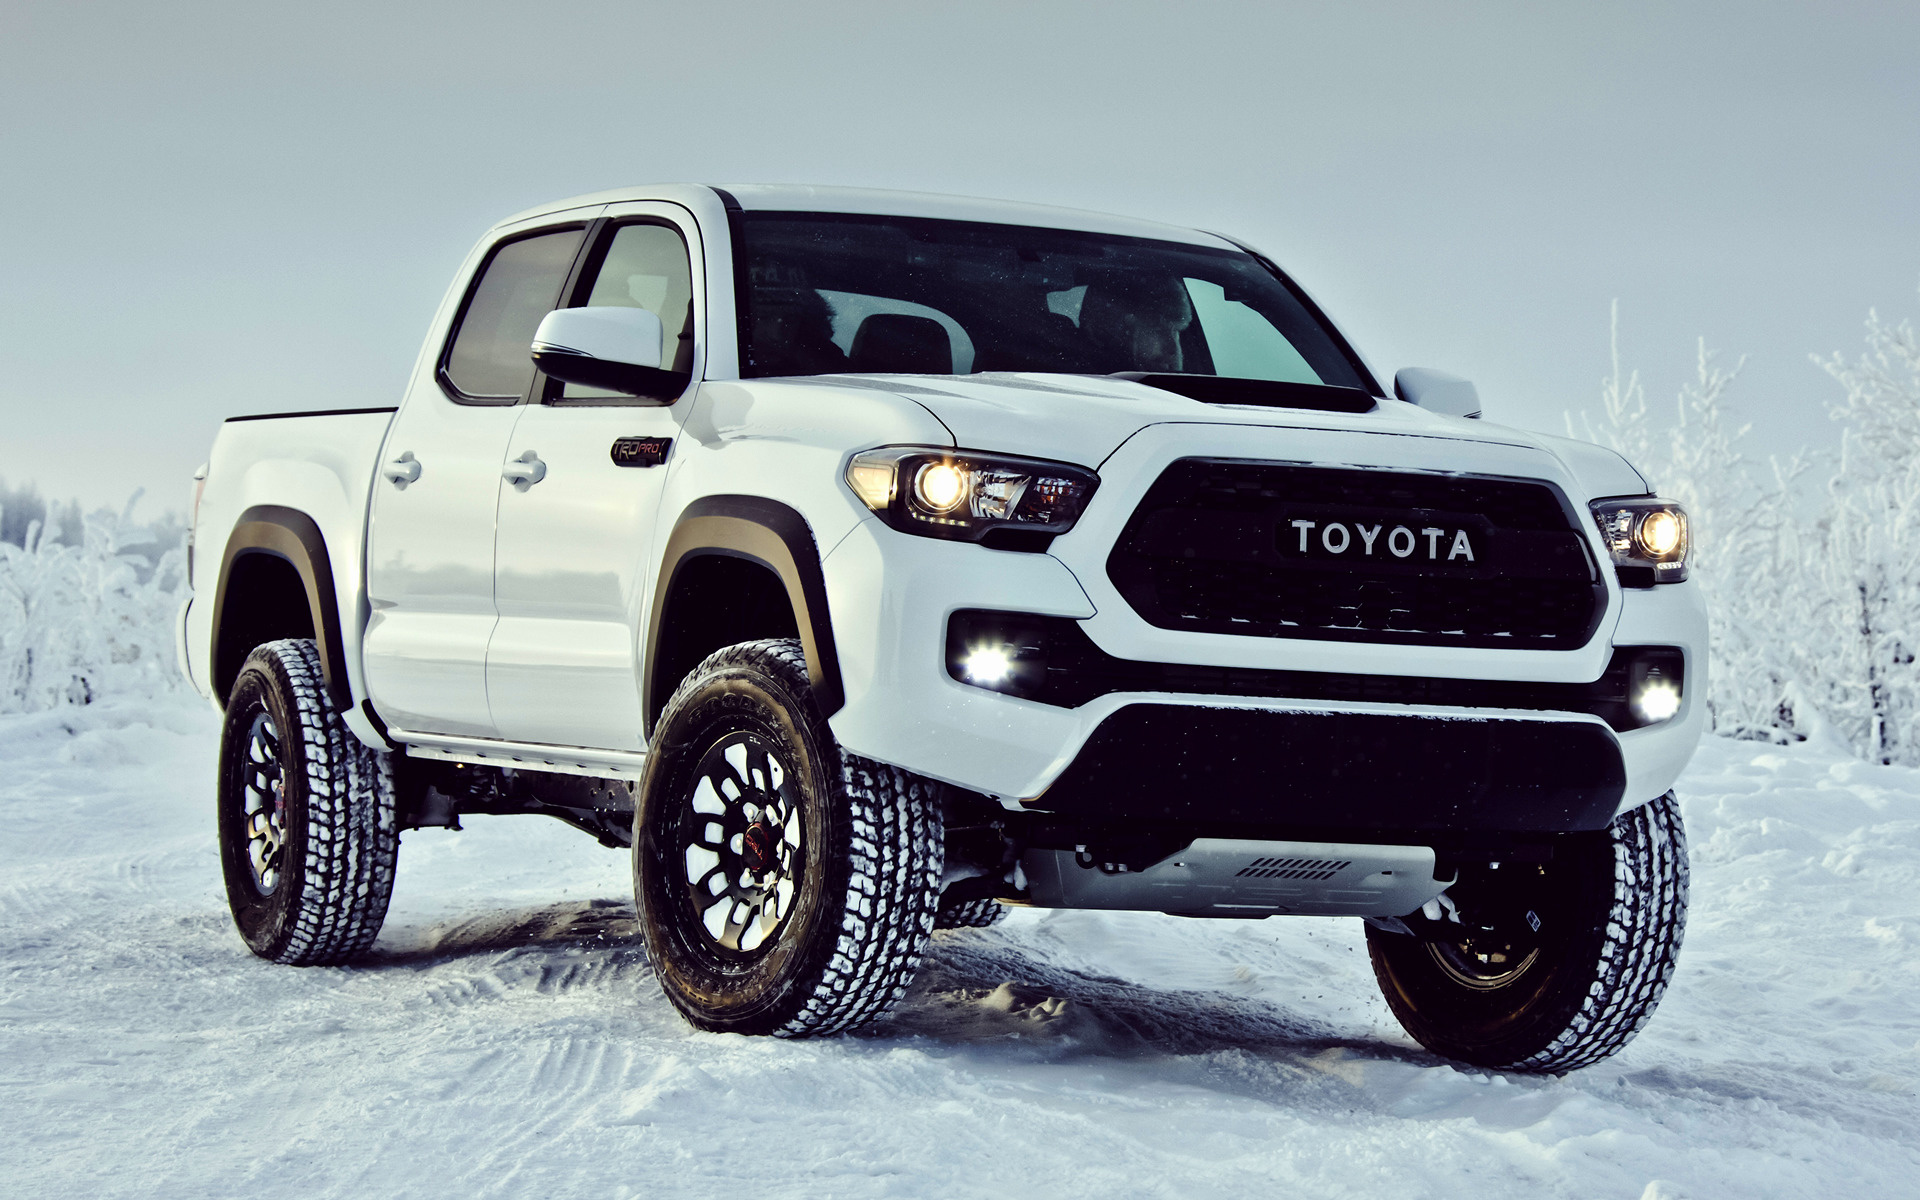 2016 Toyota Tacoma Access Cab >> 2017 Toyota Tacoma TRD Pro Double Cab - Wallpapers and HD Images | Car Pixel